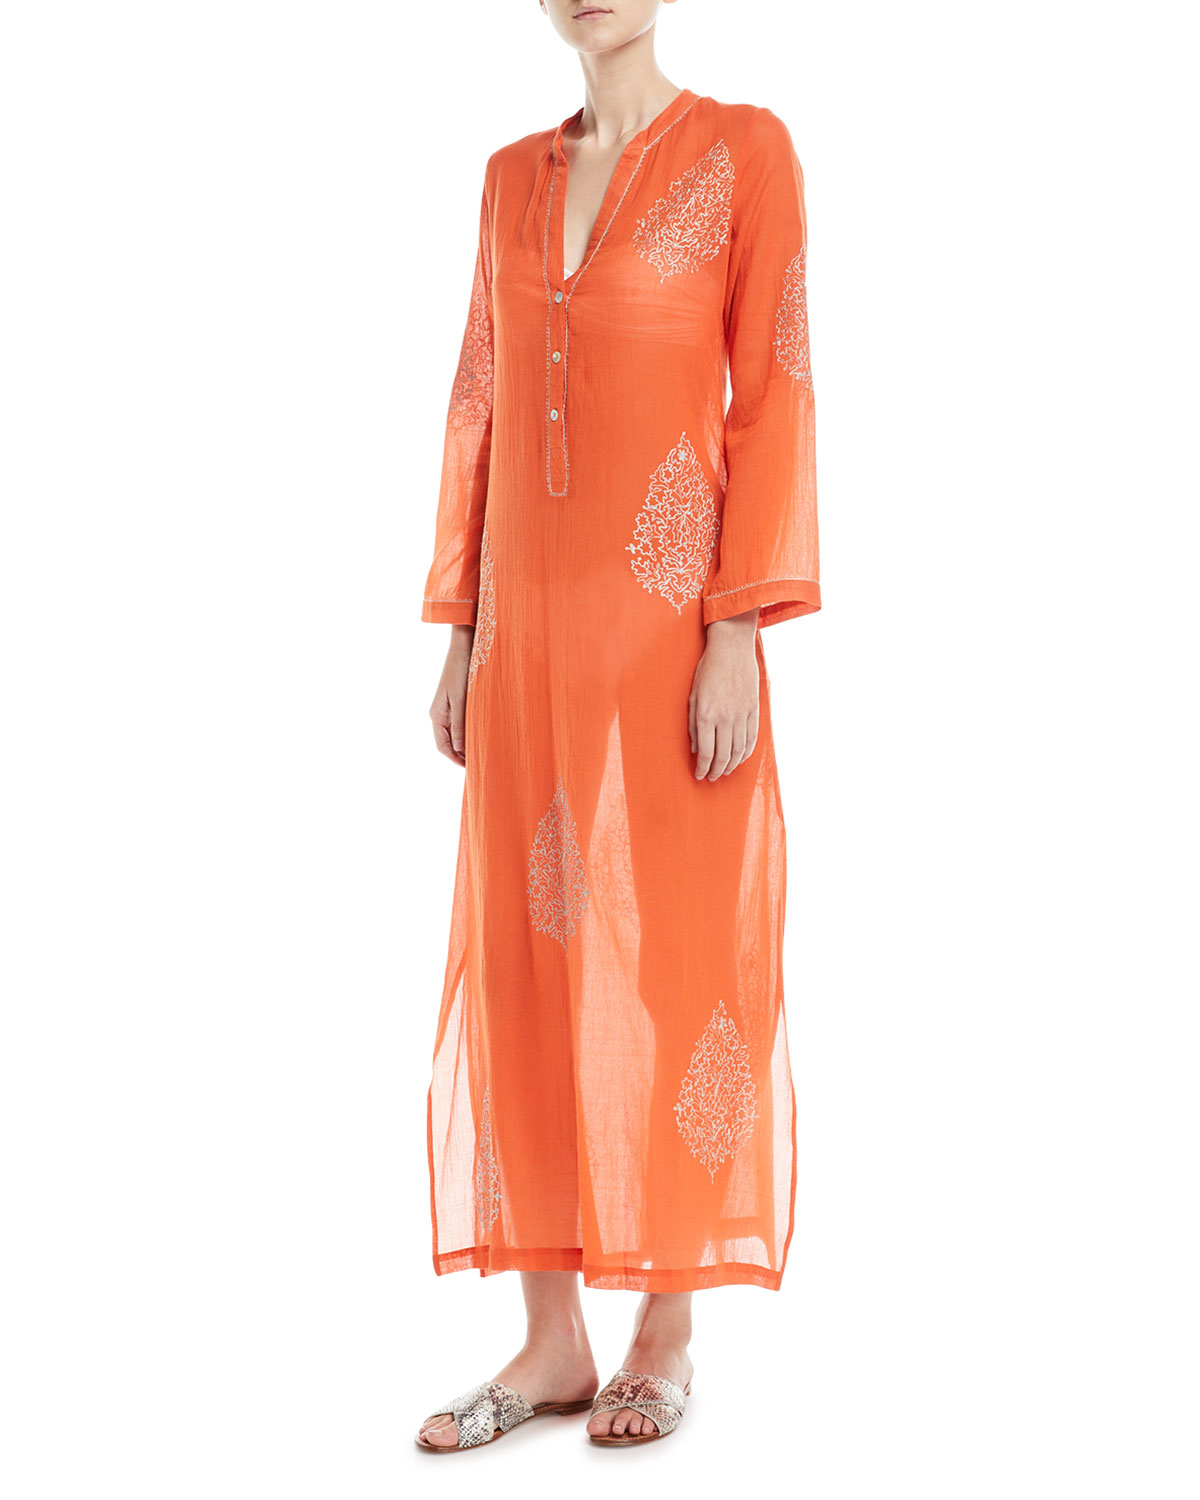 Daios V-Neck Cotton Gauze Kaftan Coverup with Embroidery